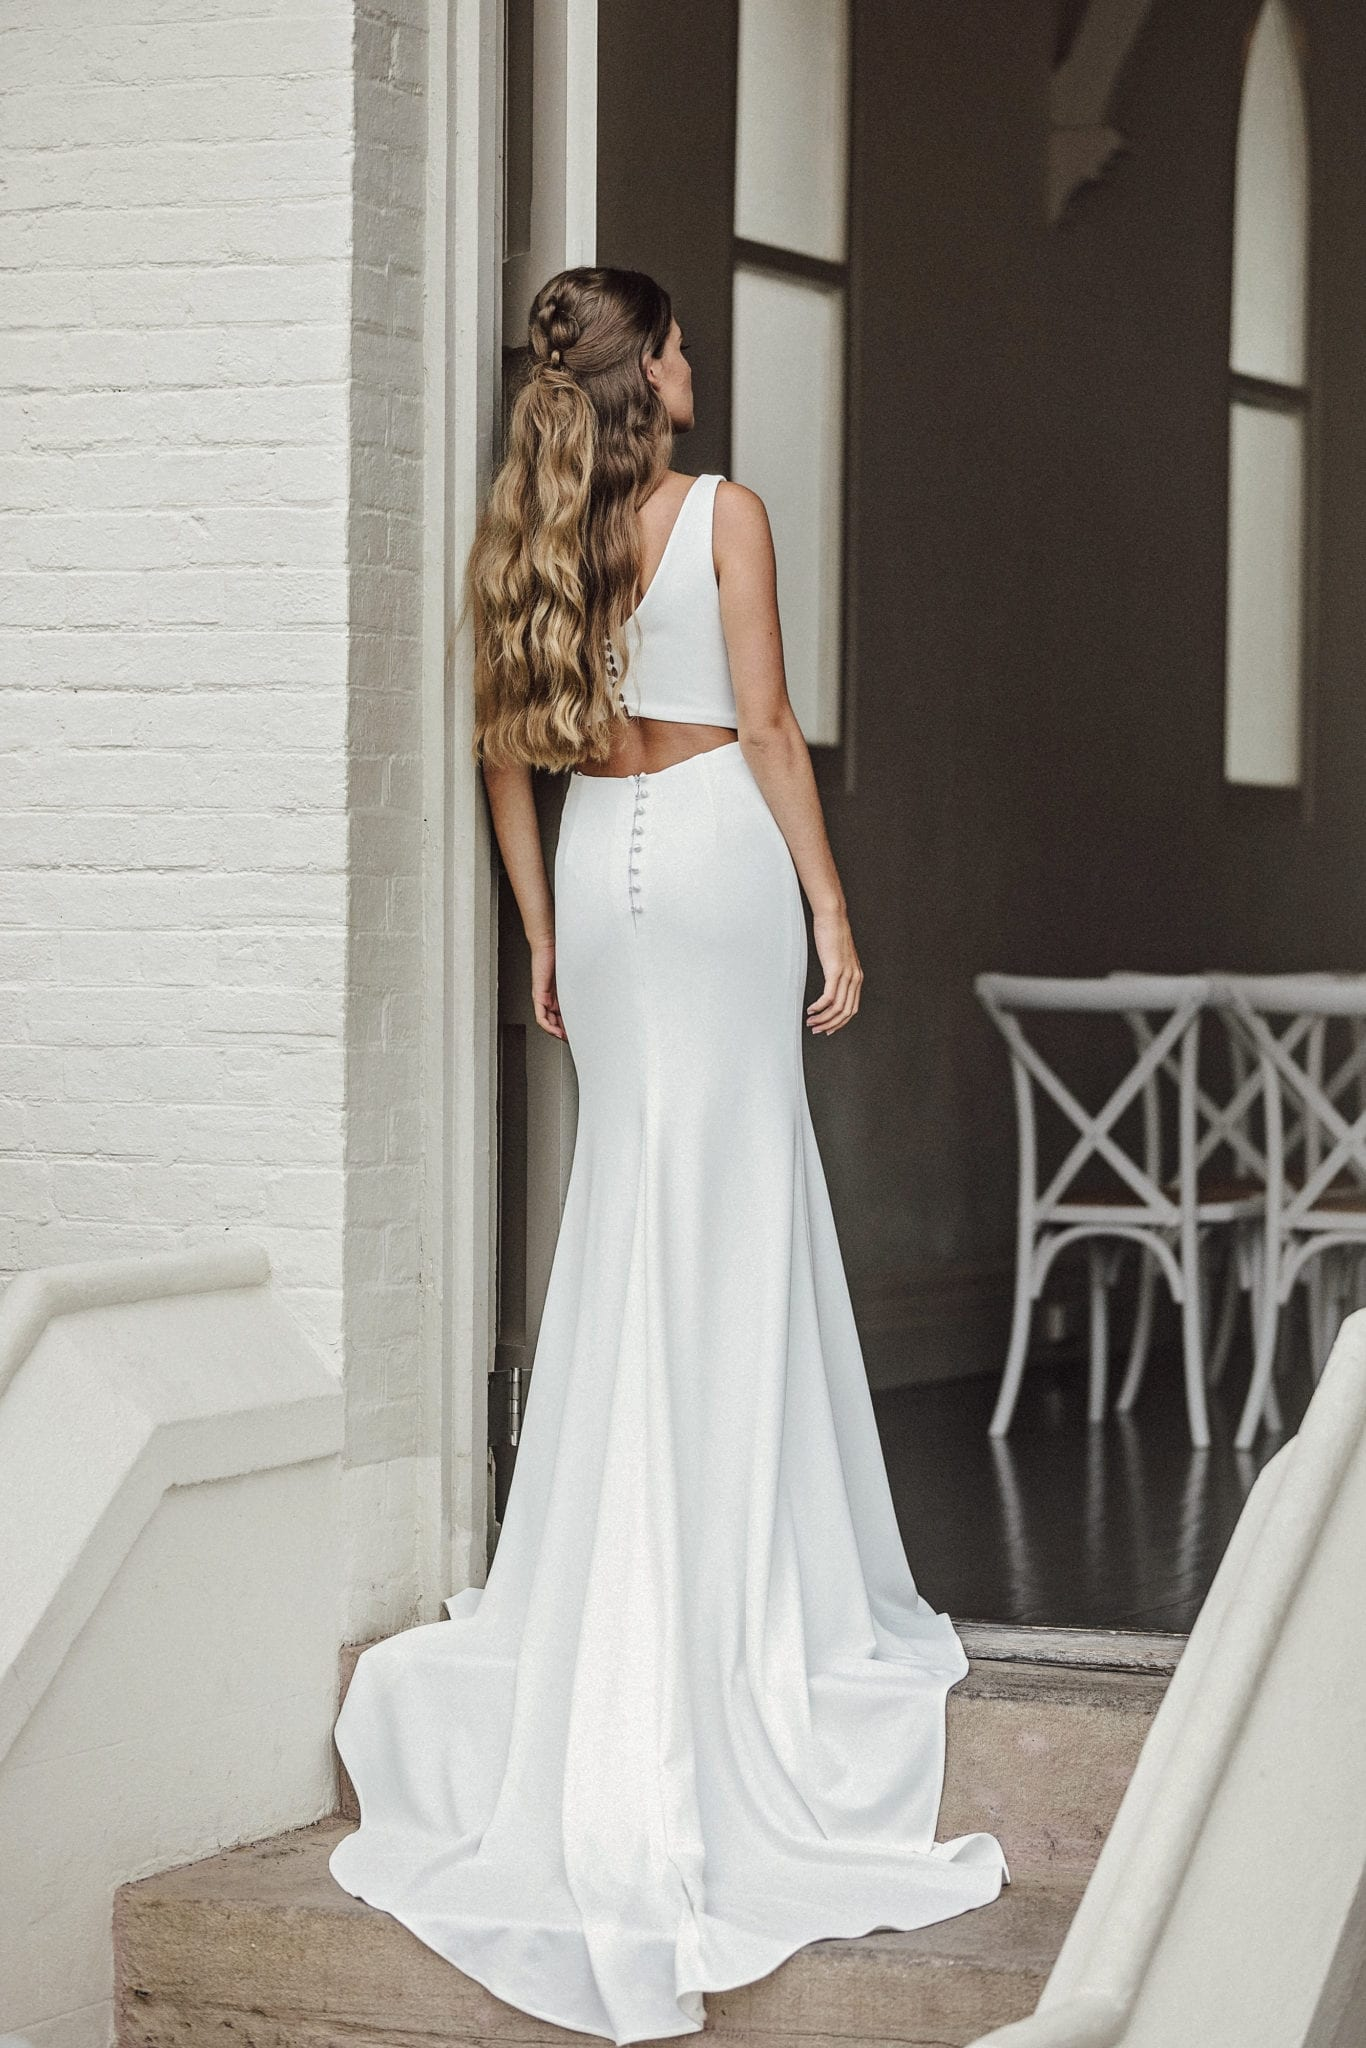 Sasha-Erin-Clare-Bridal-High-Neck-Crepe-Wedding-Dress-Keyhole-Back